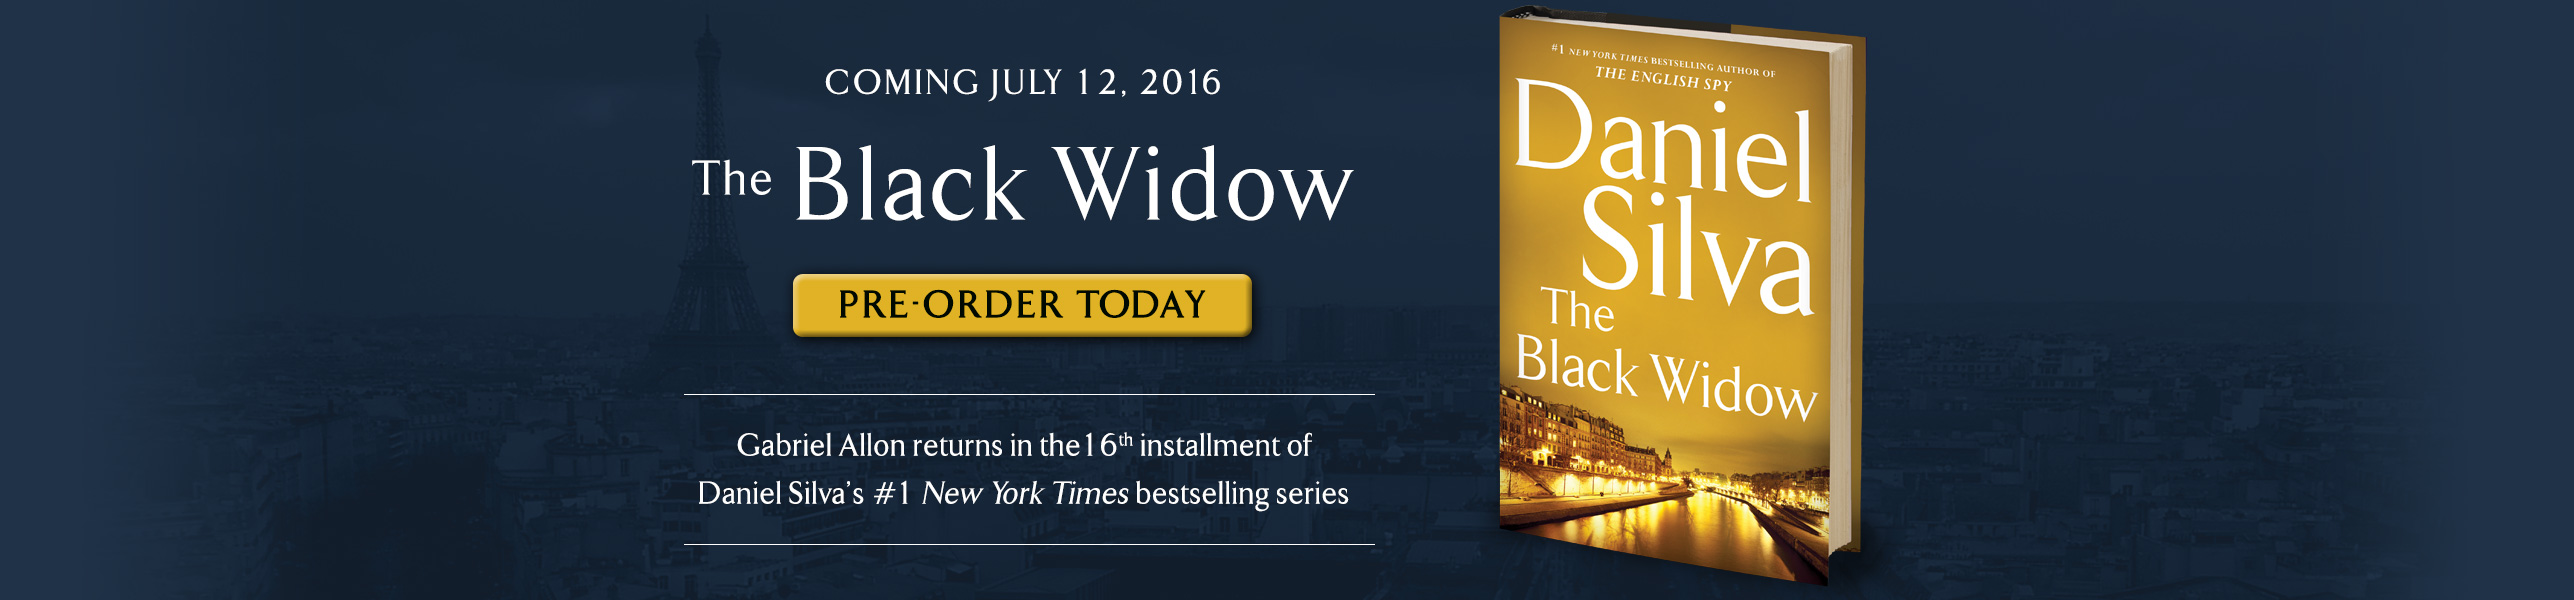 The Black Widow, the 16th novel in the #1 New York Times bestselling Gabriel Allon series, will be available on July 12, 2016